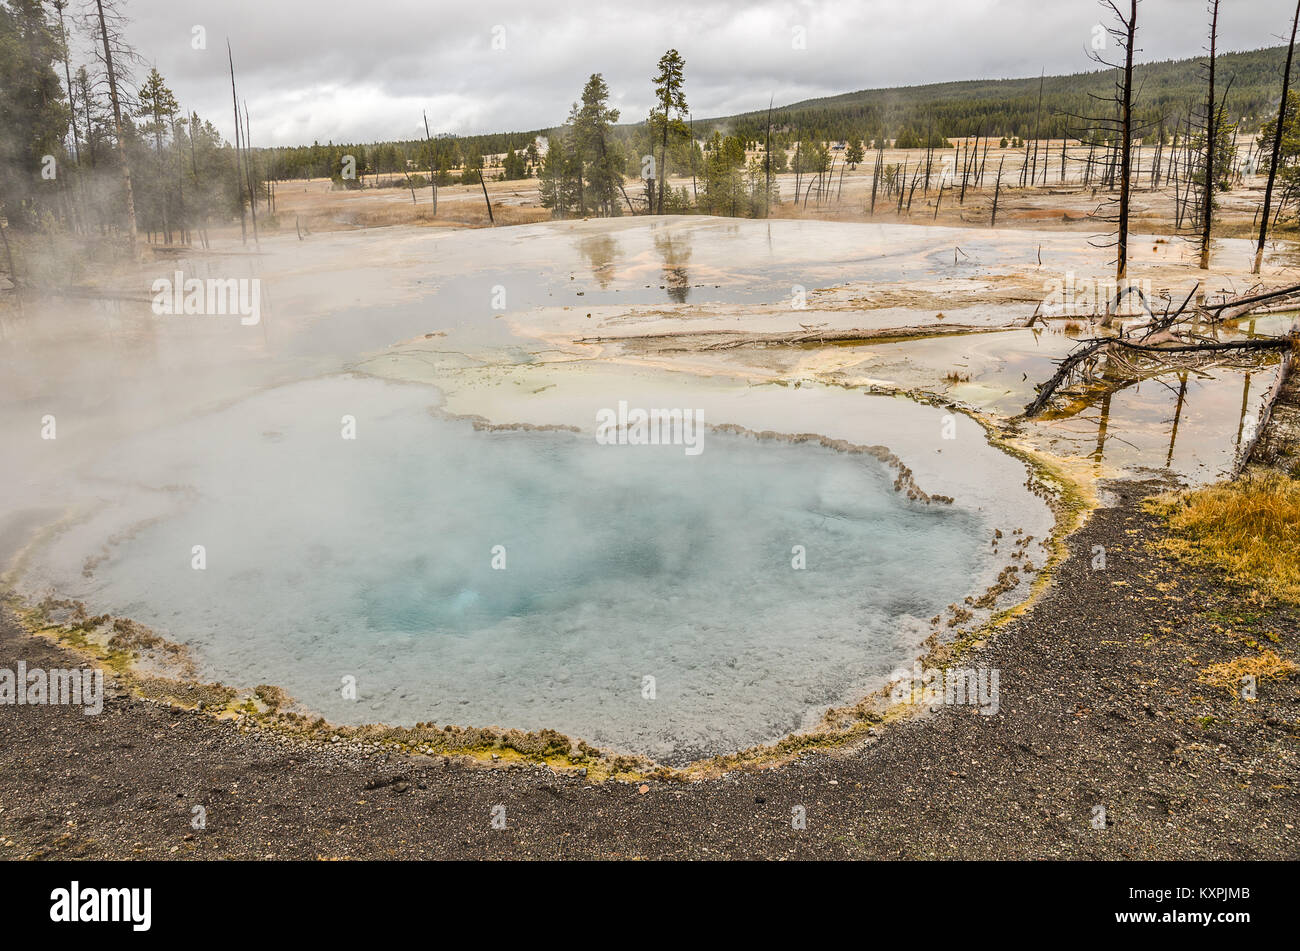 Beautiful turquoise or aqua color in the middle of this hot springs pool in Yellowstone National Park - Stock Image